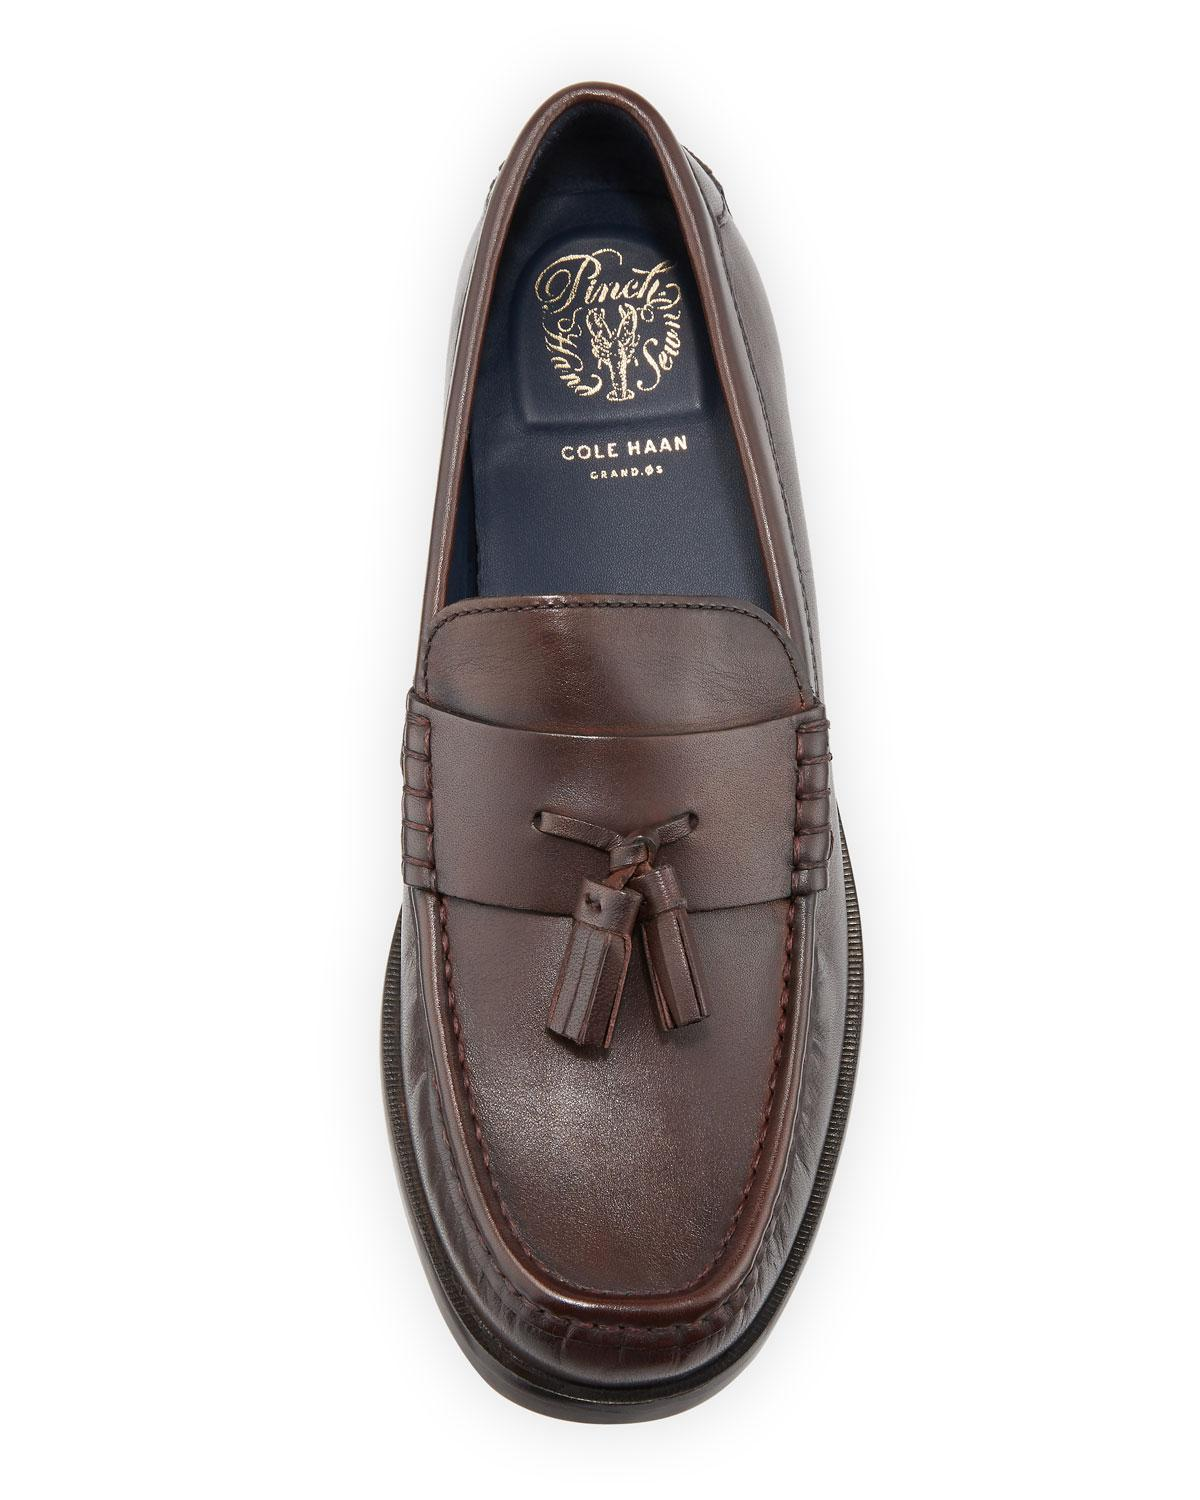 72ad5dc3435 Lyst - Cole Haan Men s Pinch Friday Tassel Loafers in Brown for Men